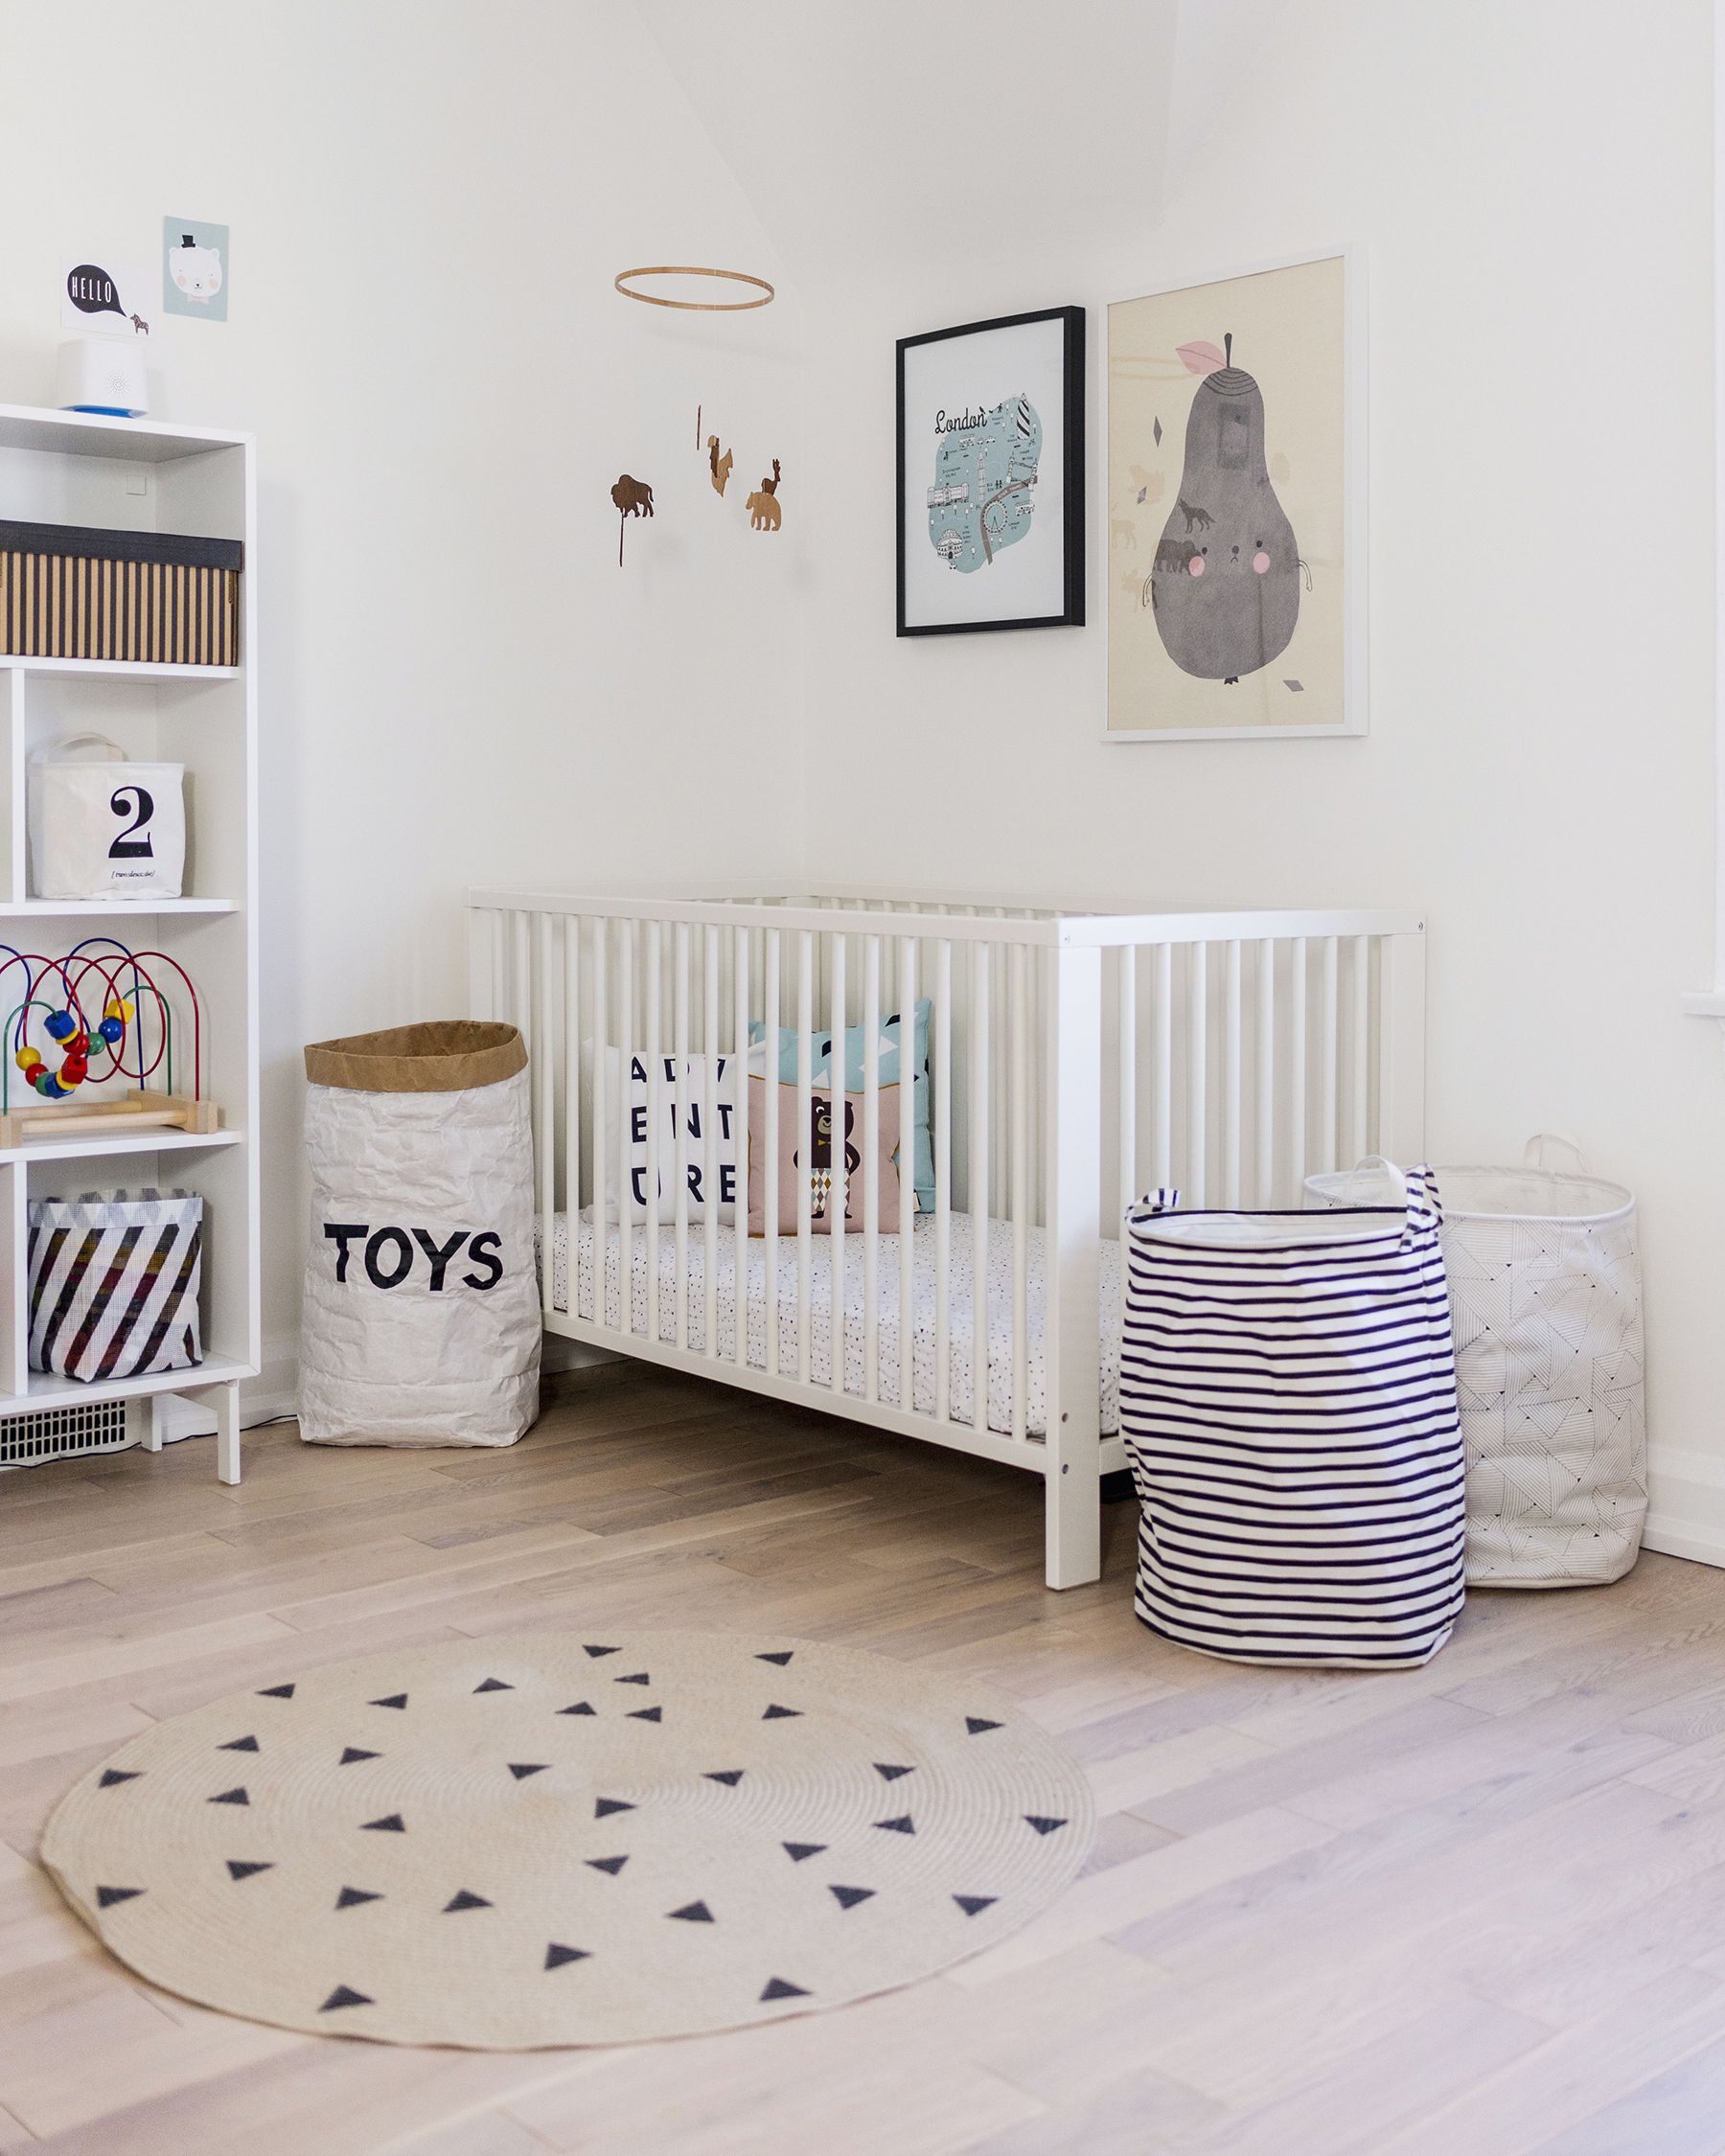 Kids Room Decor: Favourite Scandinavian Nursery + Kids Room Decor Items